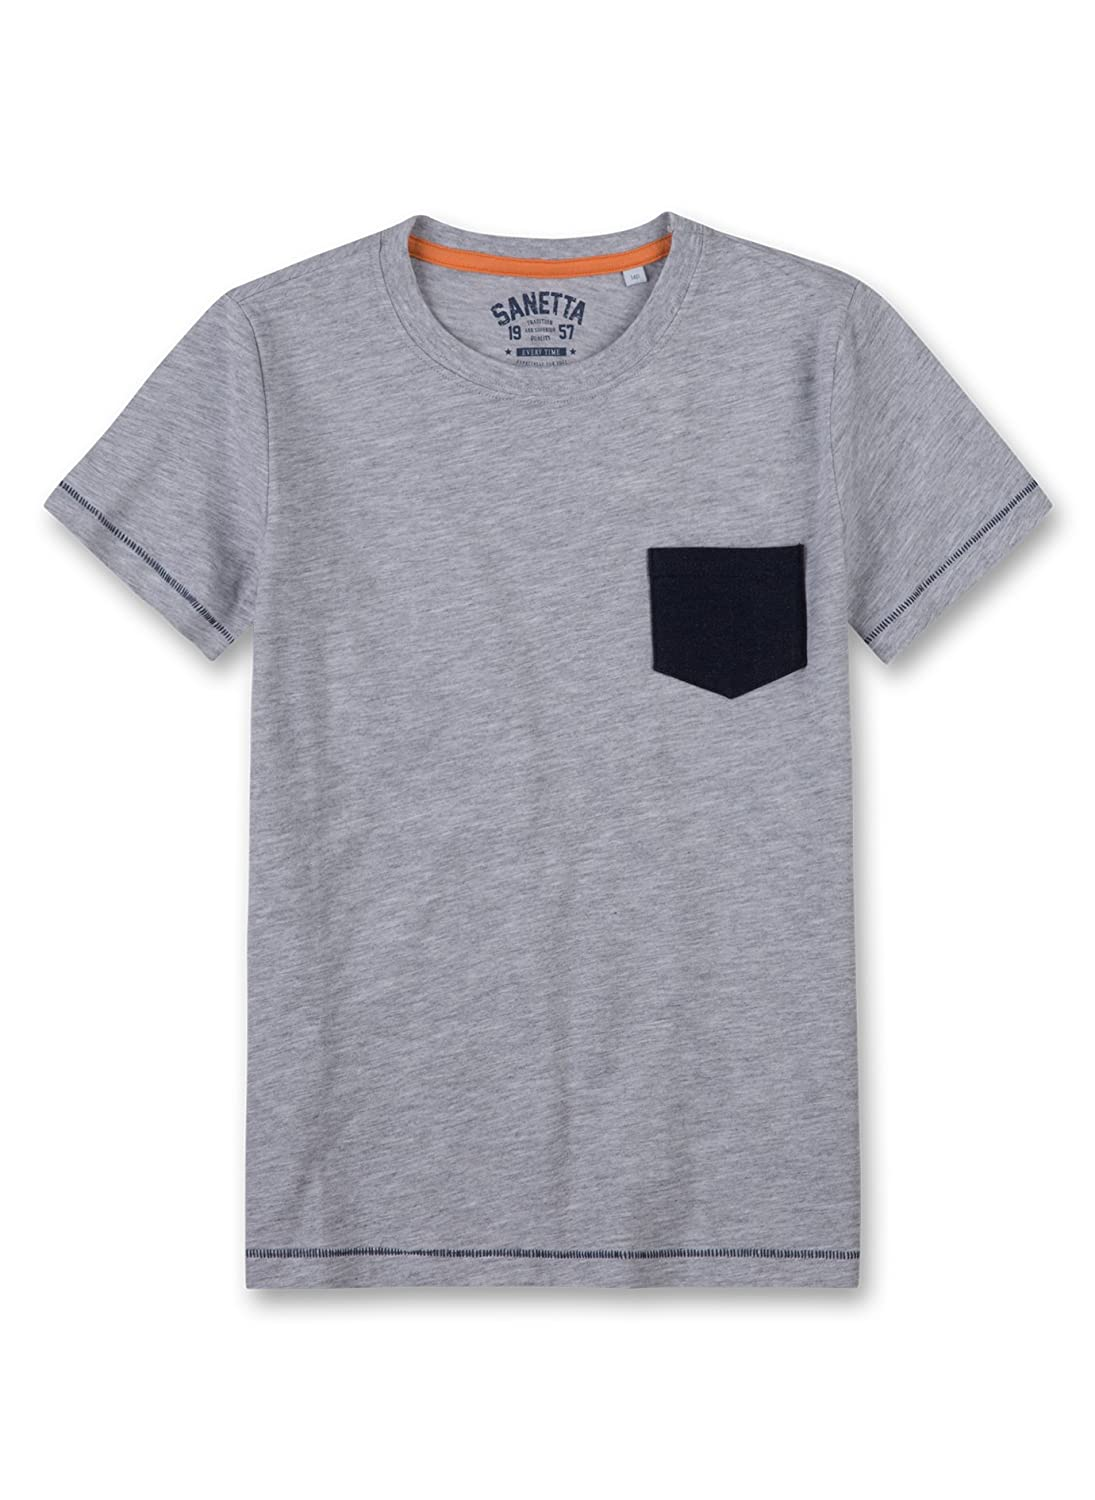 Sanetta Boy's Pyjama Top Grey (Hellgrau Melange 1646) 8 Years 243879